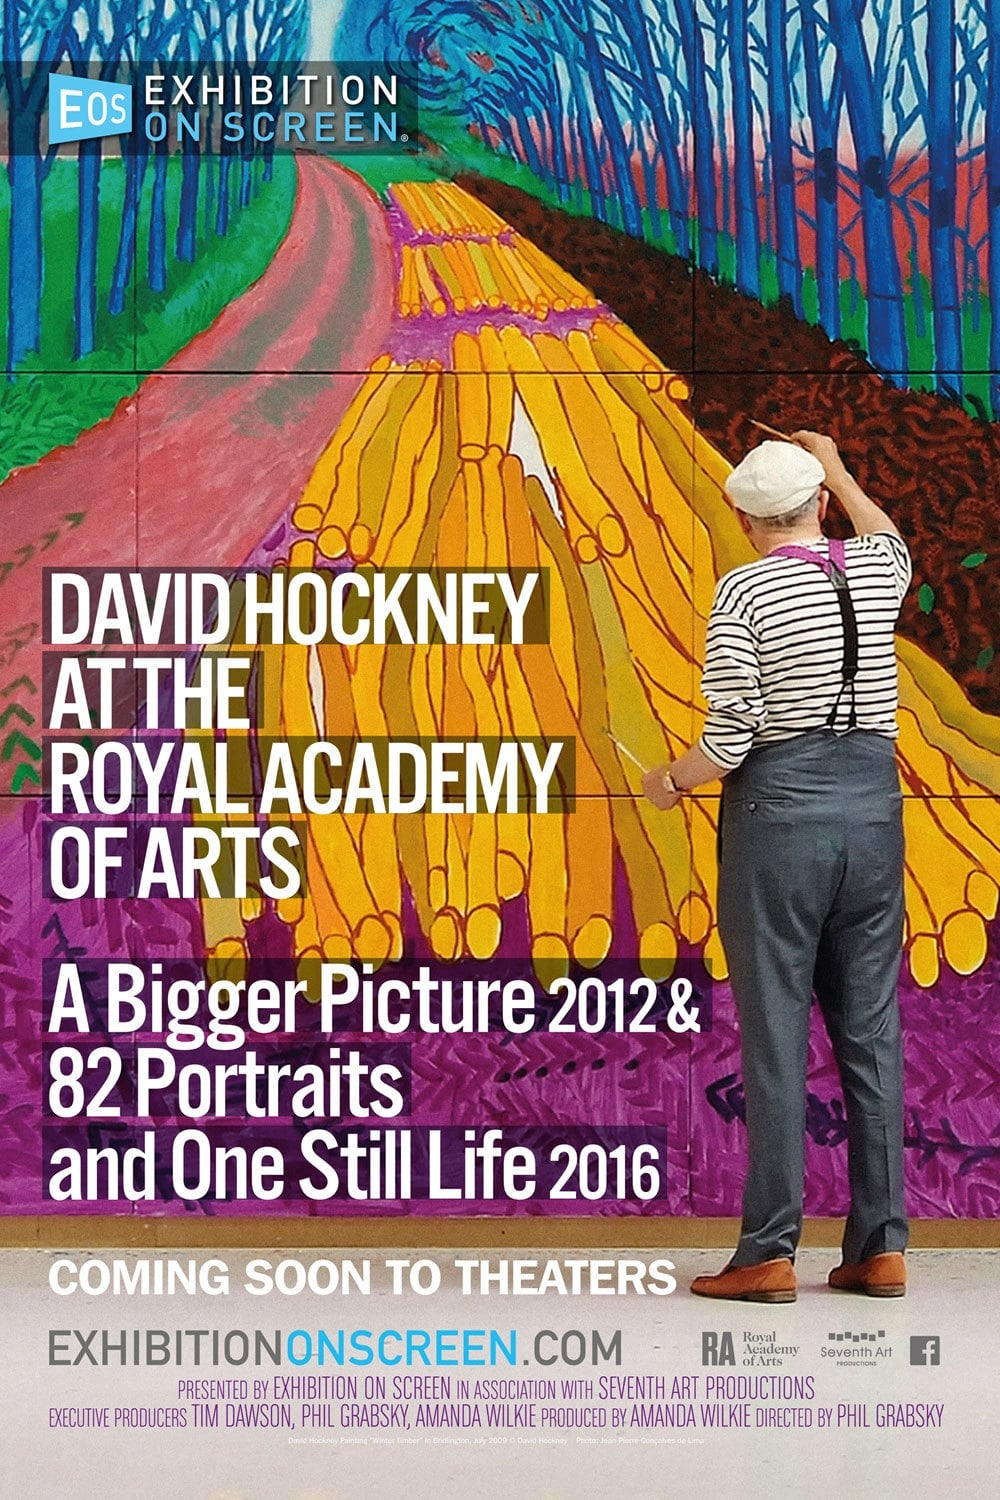 image for David Hockney at the Royal Academy of Arts - Exhibition on Screen